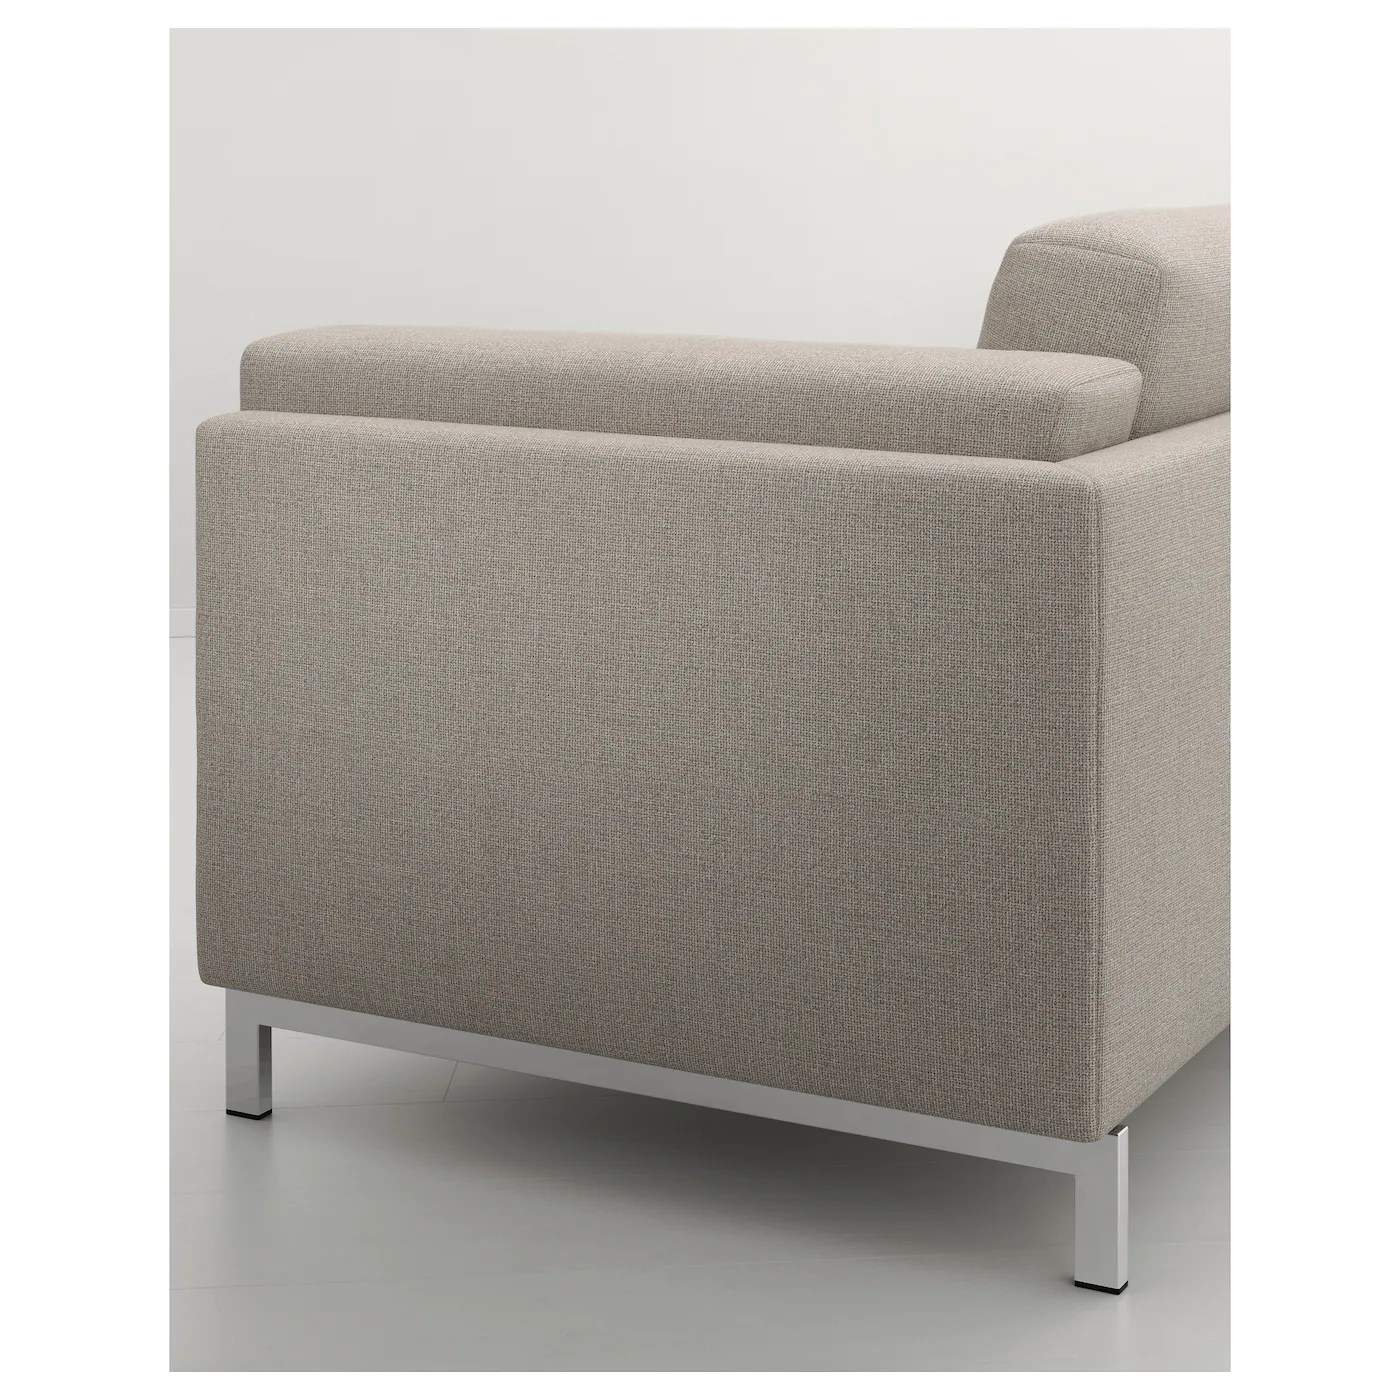 Ikea Nockeby Two Seat Sofa Nockeby Legs For 2 Seat Sofa Chrome Plated Ikea